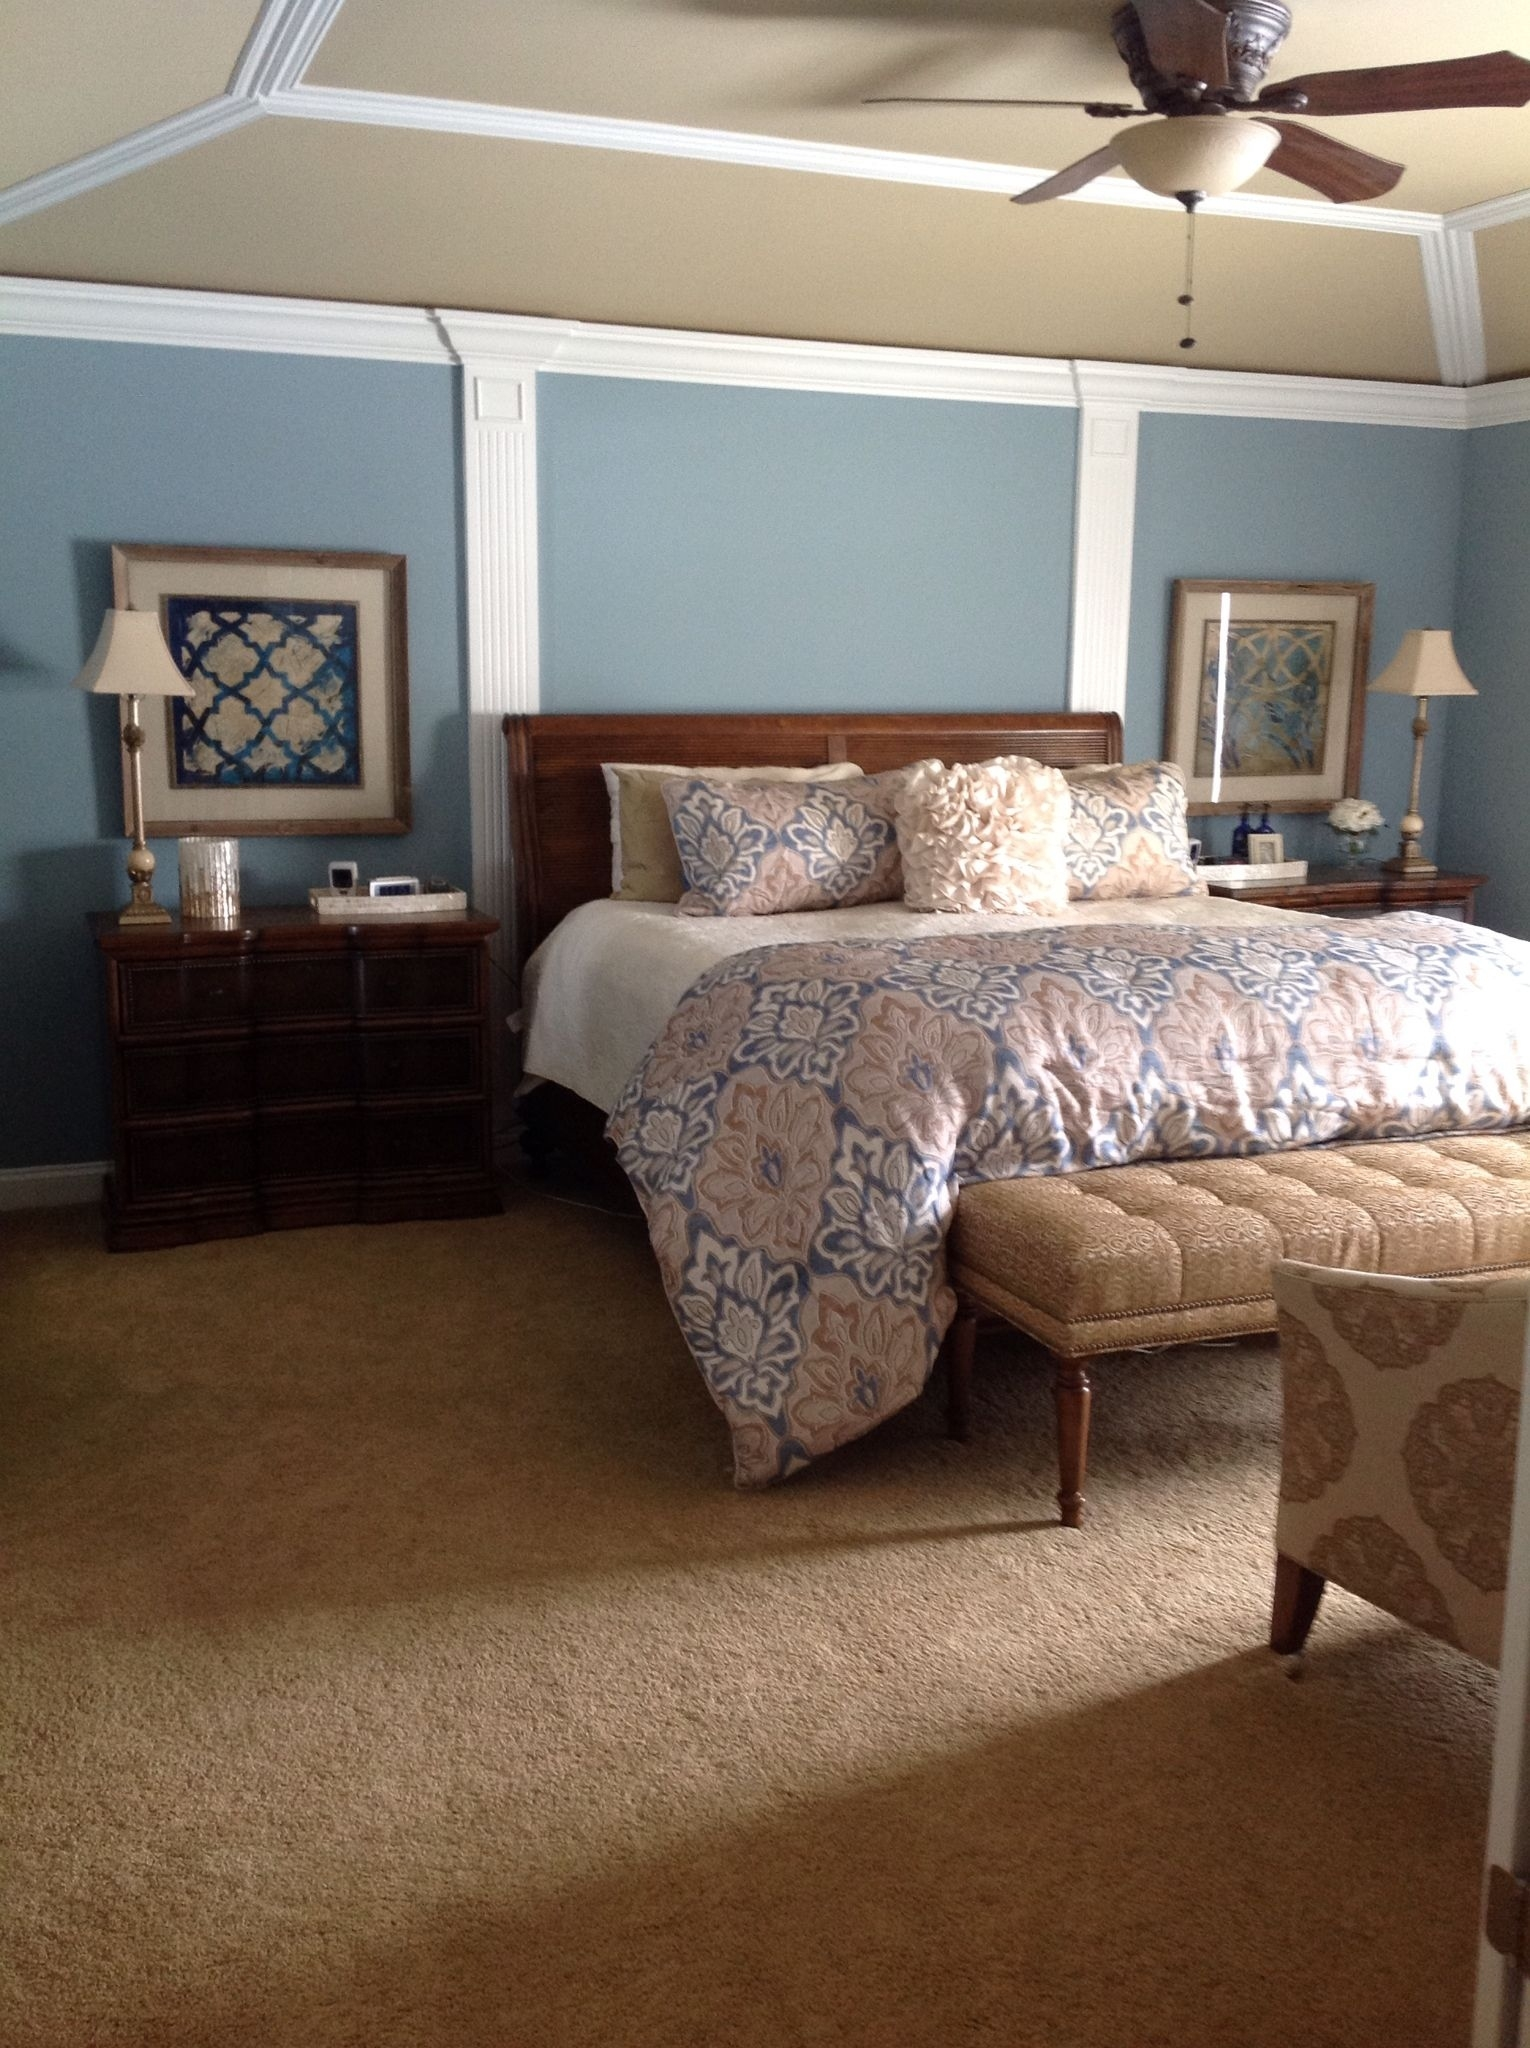 Walls: Sherwin-Williams Meditative. Ceiling: Sherwin intended for Master Bedroom Wall Moulding